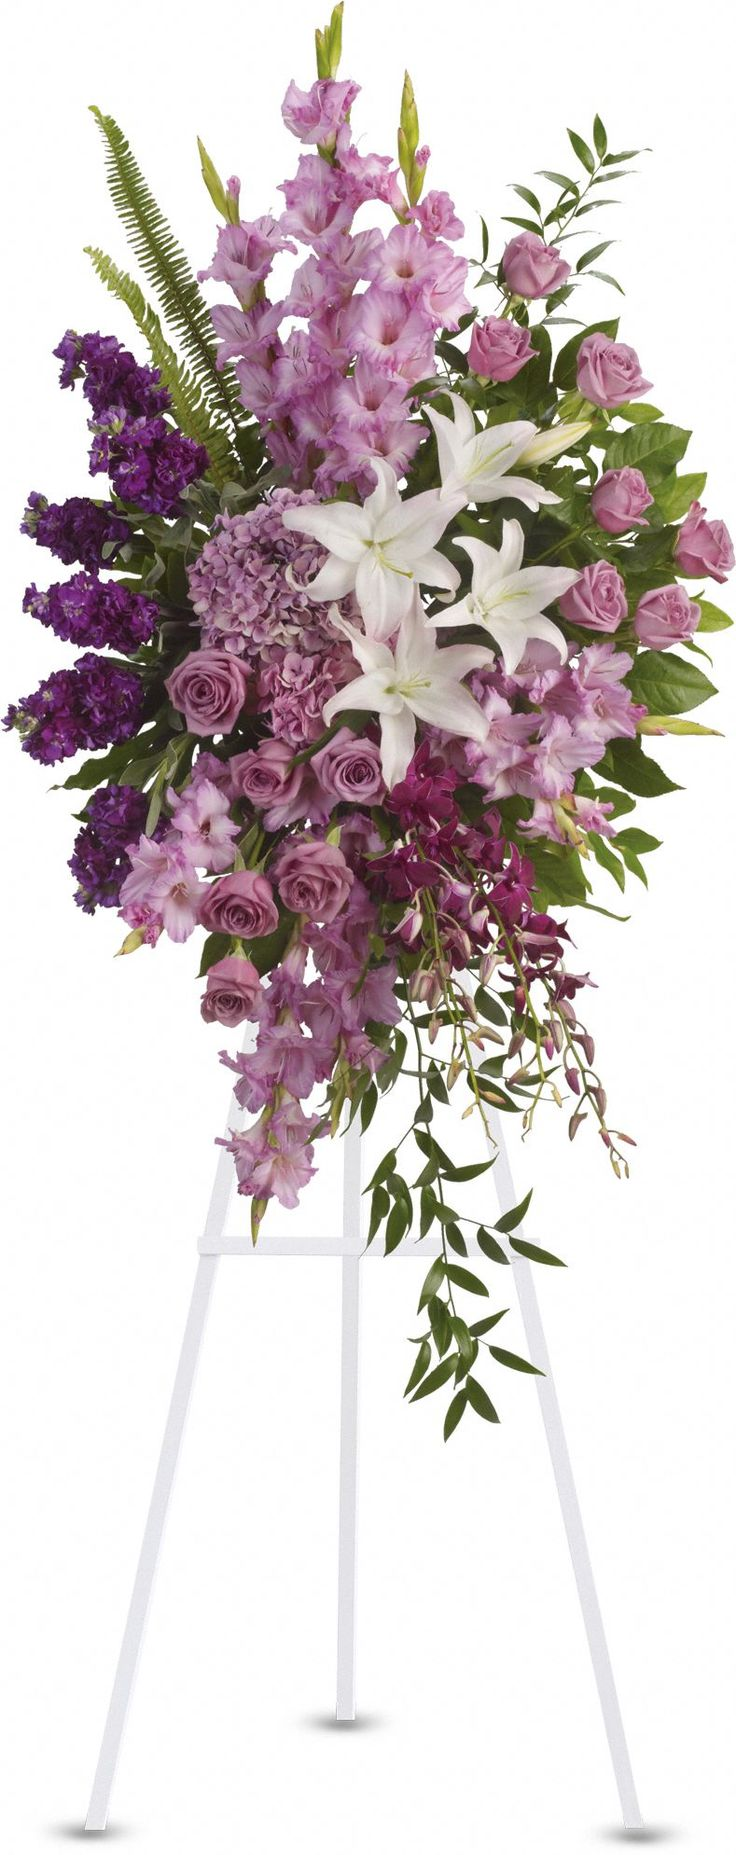 Gifts for sympathy other than flowers best flower 2017 what should i send as a memorial gift instead of flowers urns izmirmasajfo